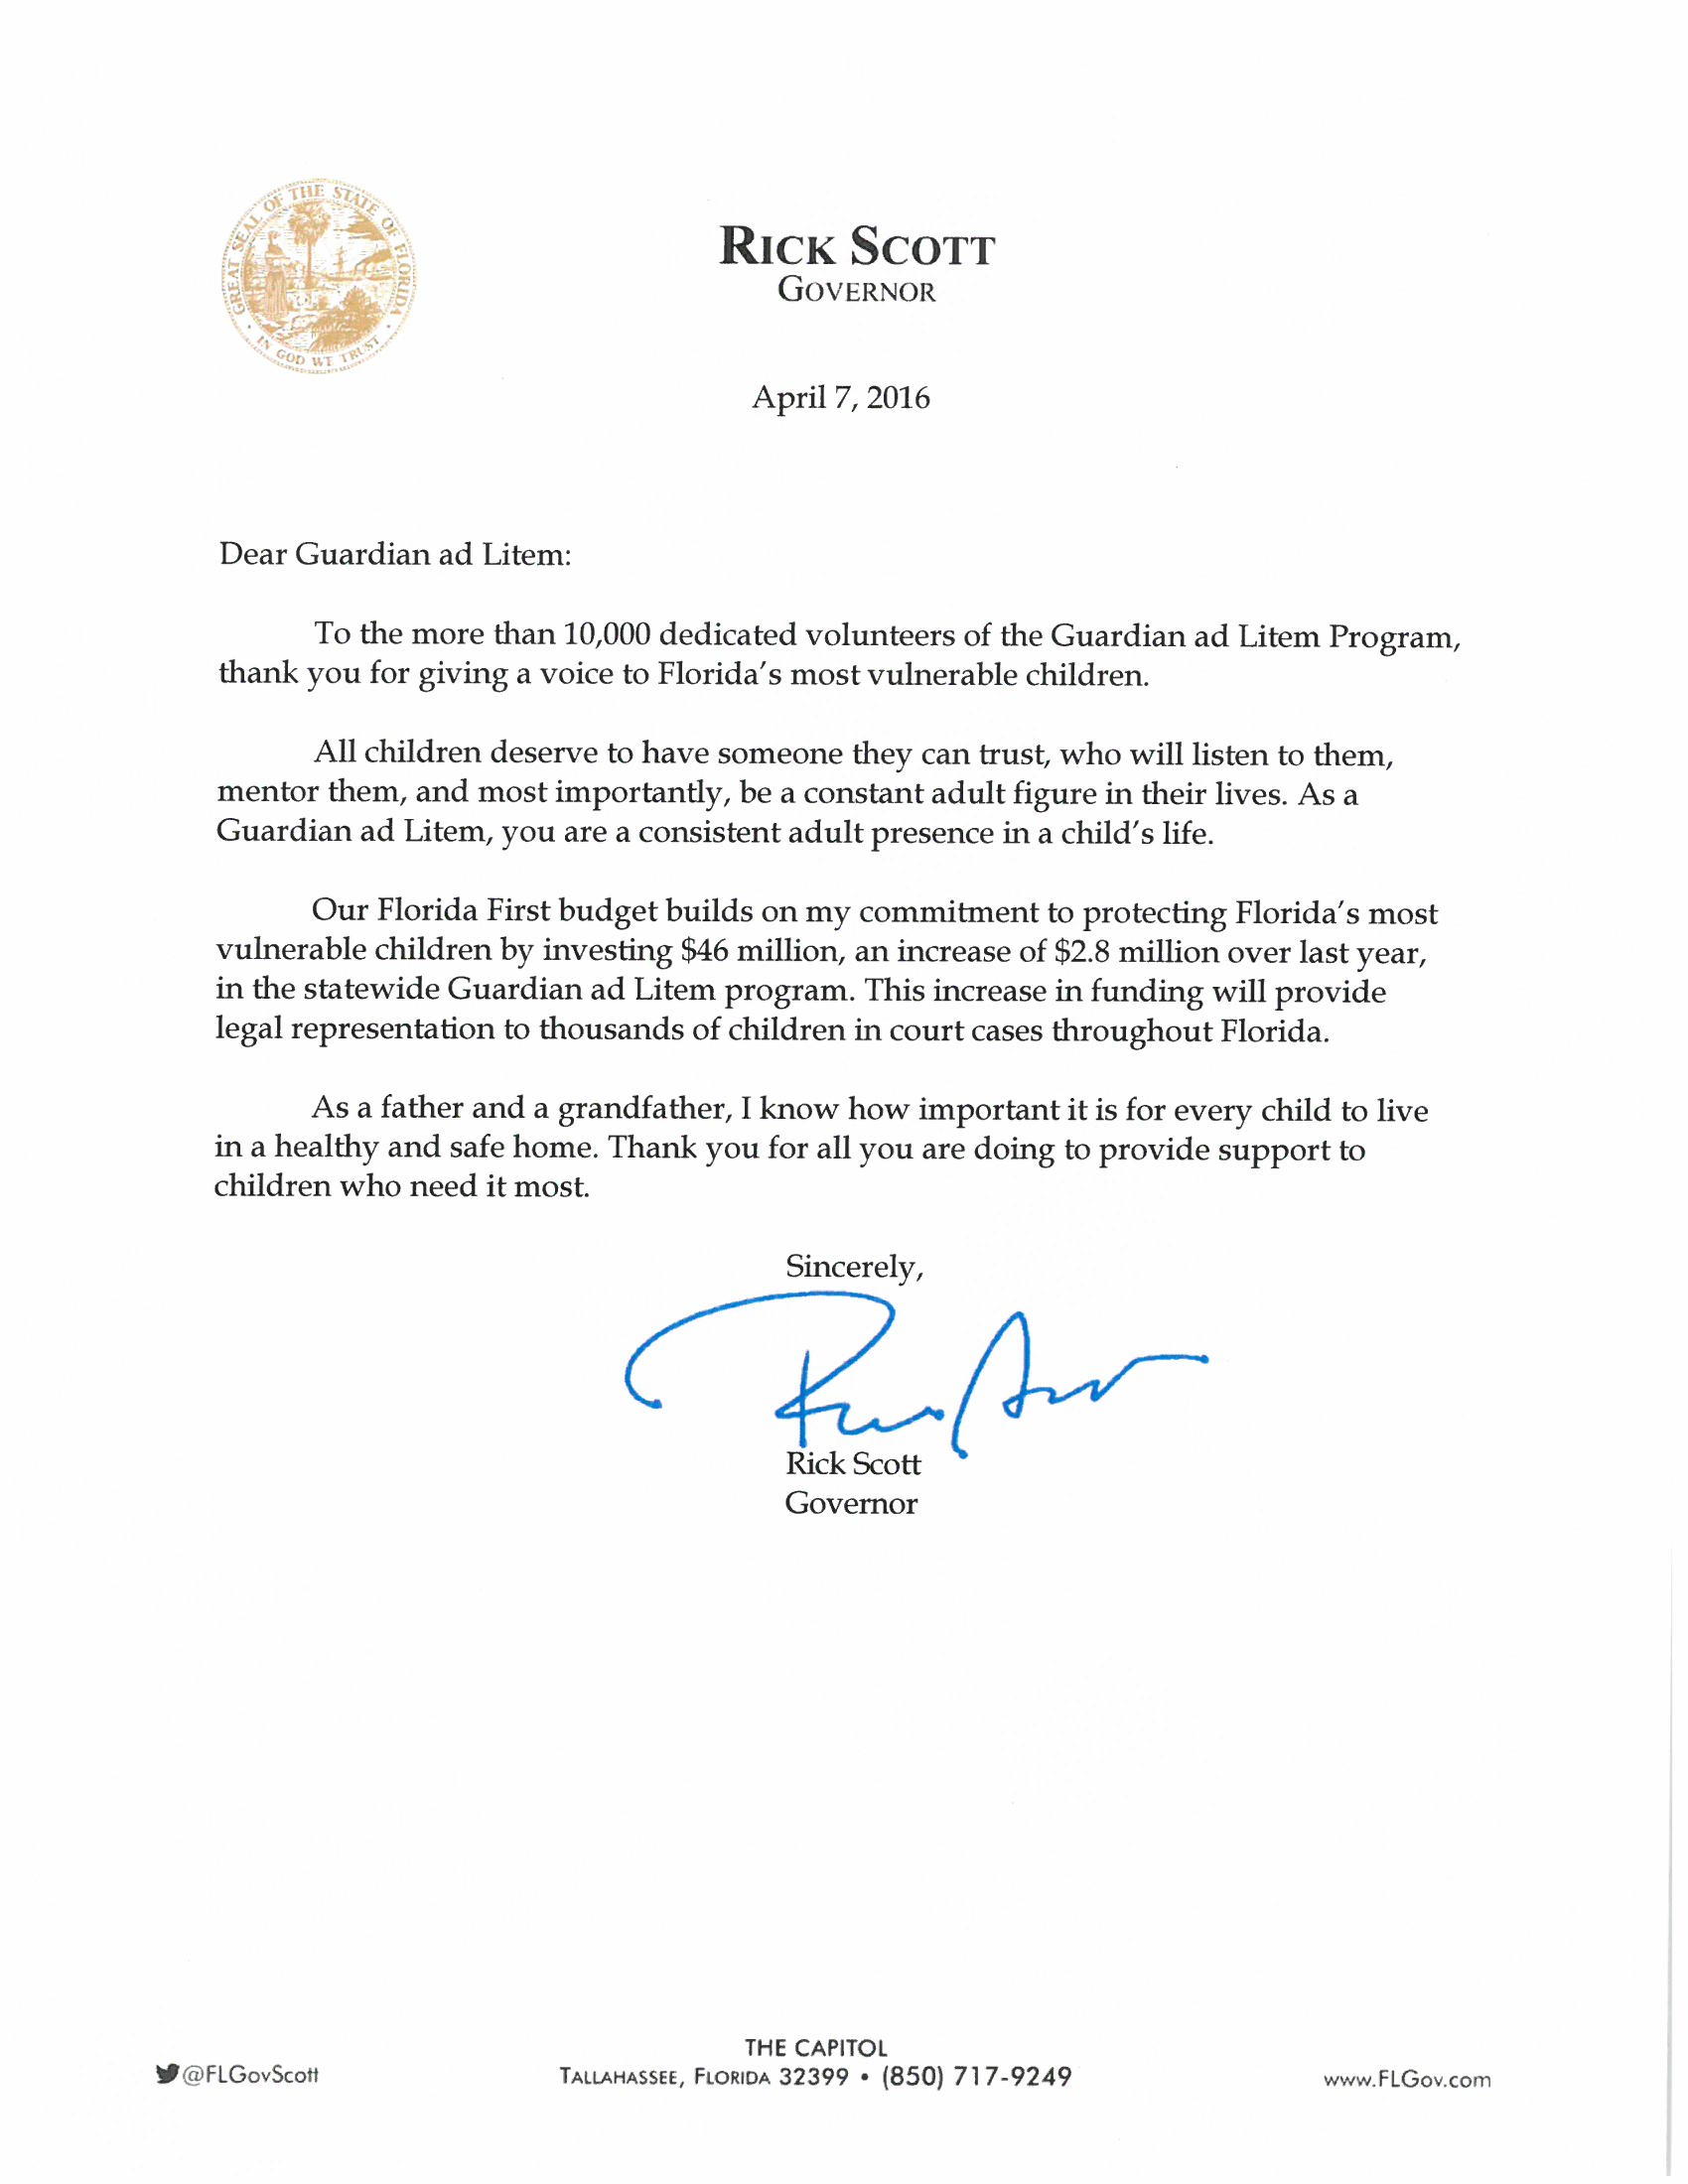 Governor Rick Scott S Personal Letter To Gal Volunteers